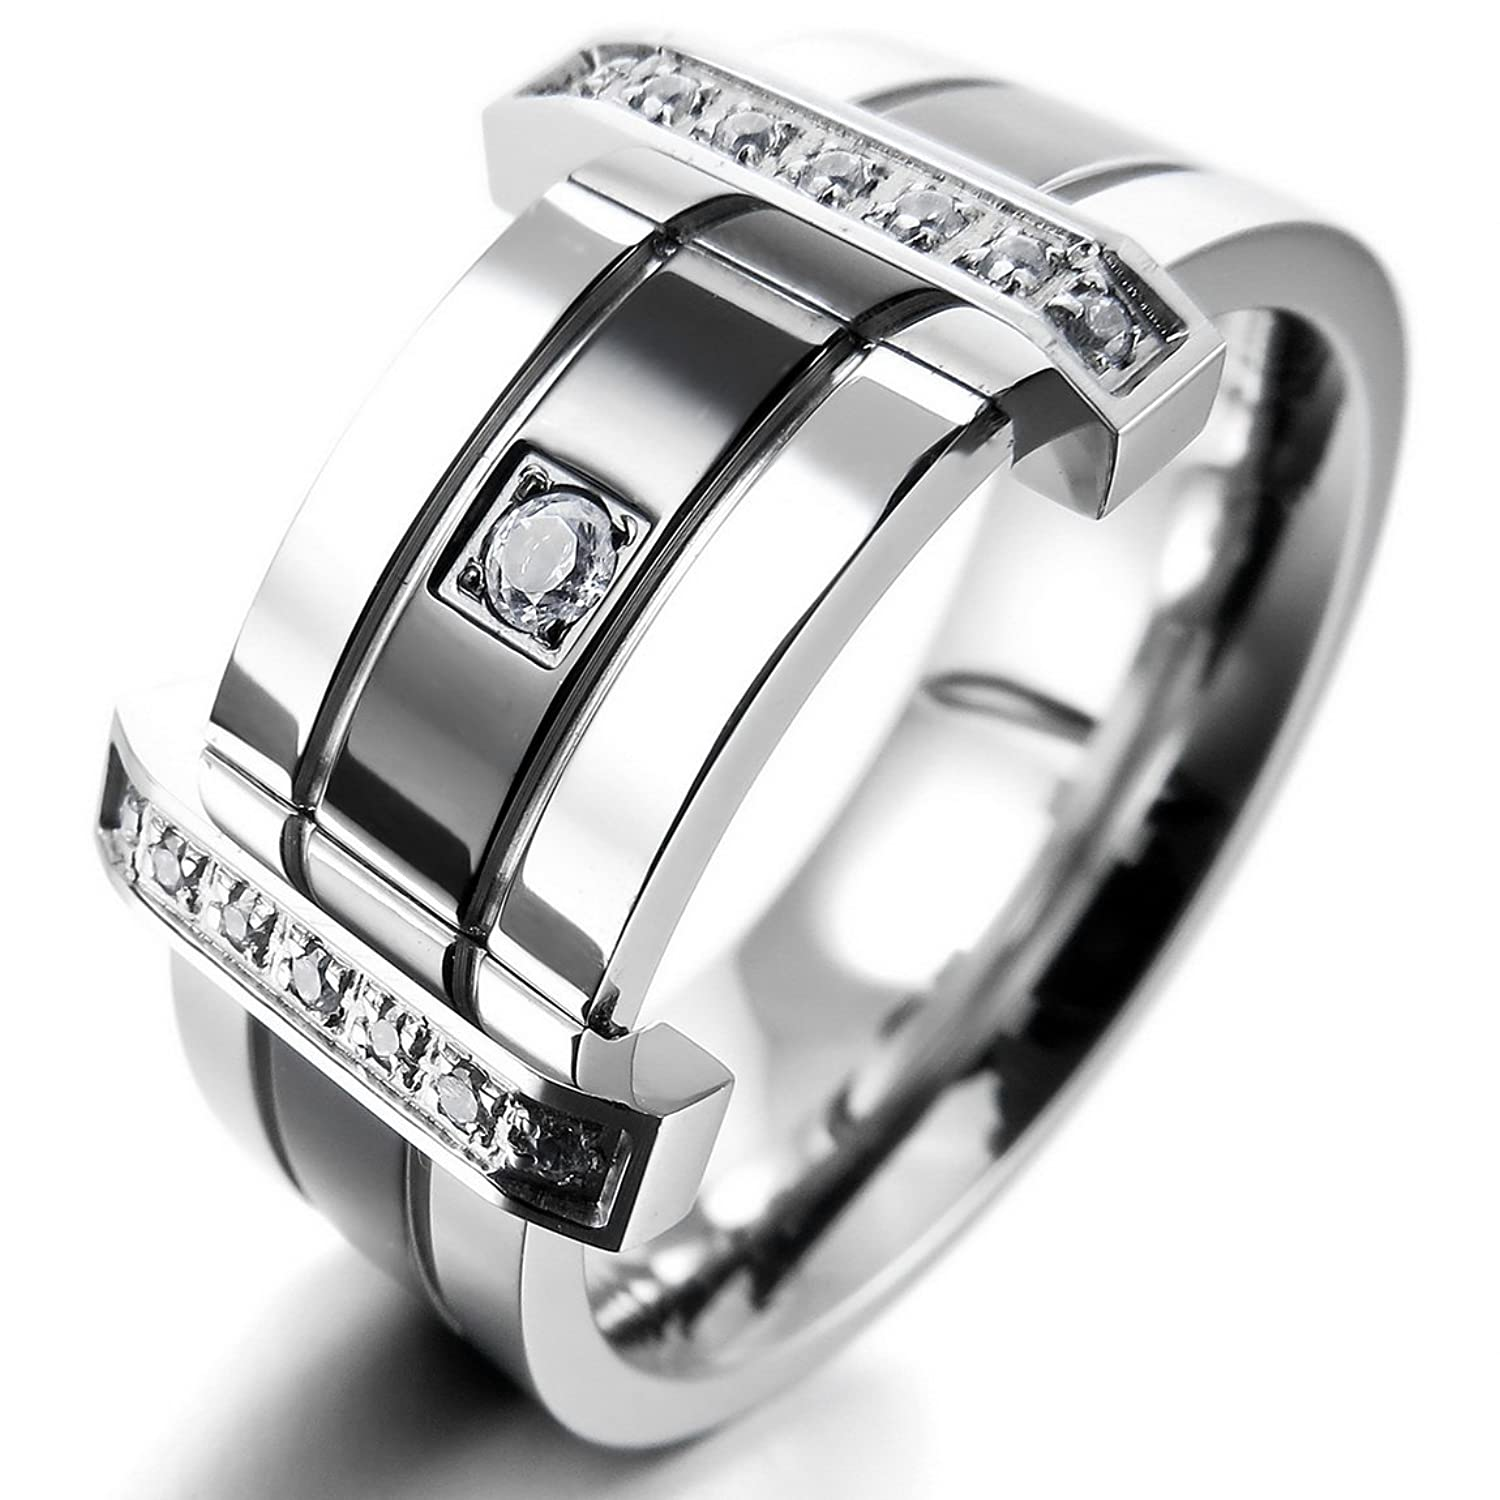 s com size amazon lord rings ring jewelry steel band via pinterest english stainless men prayer lords dp